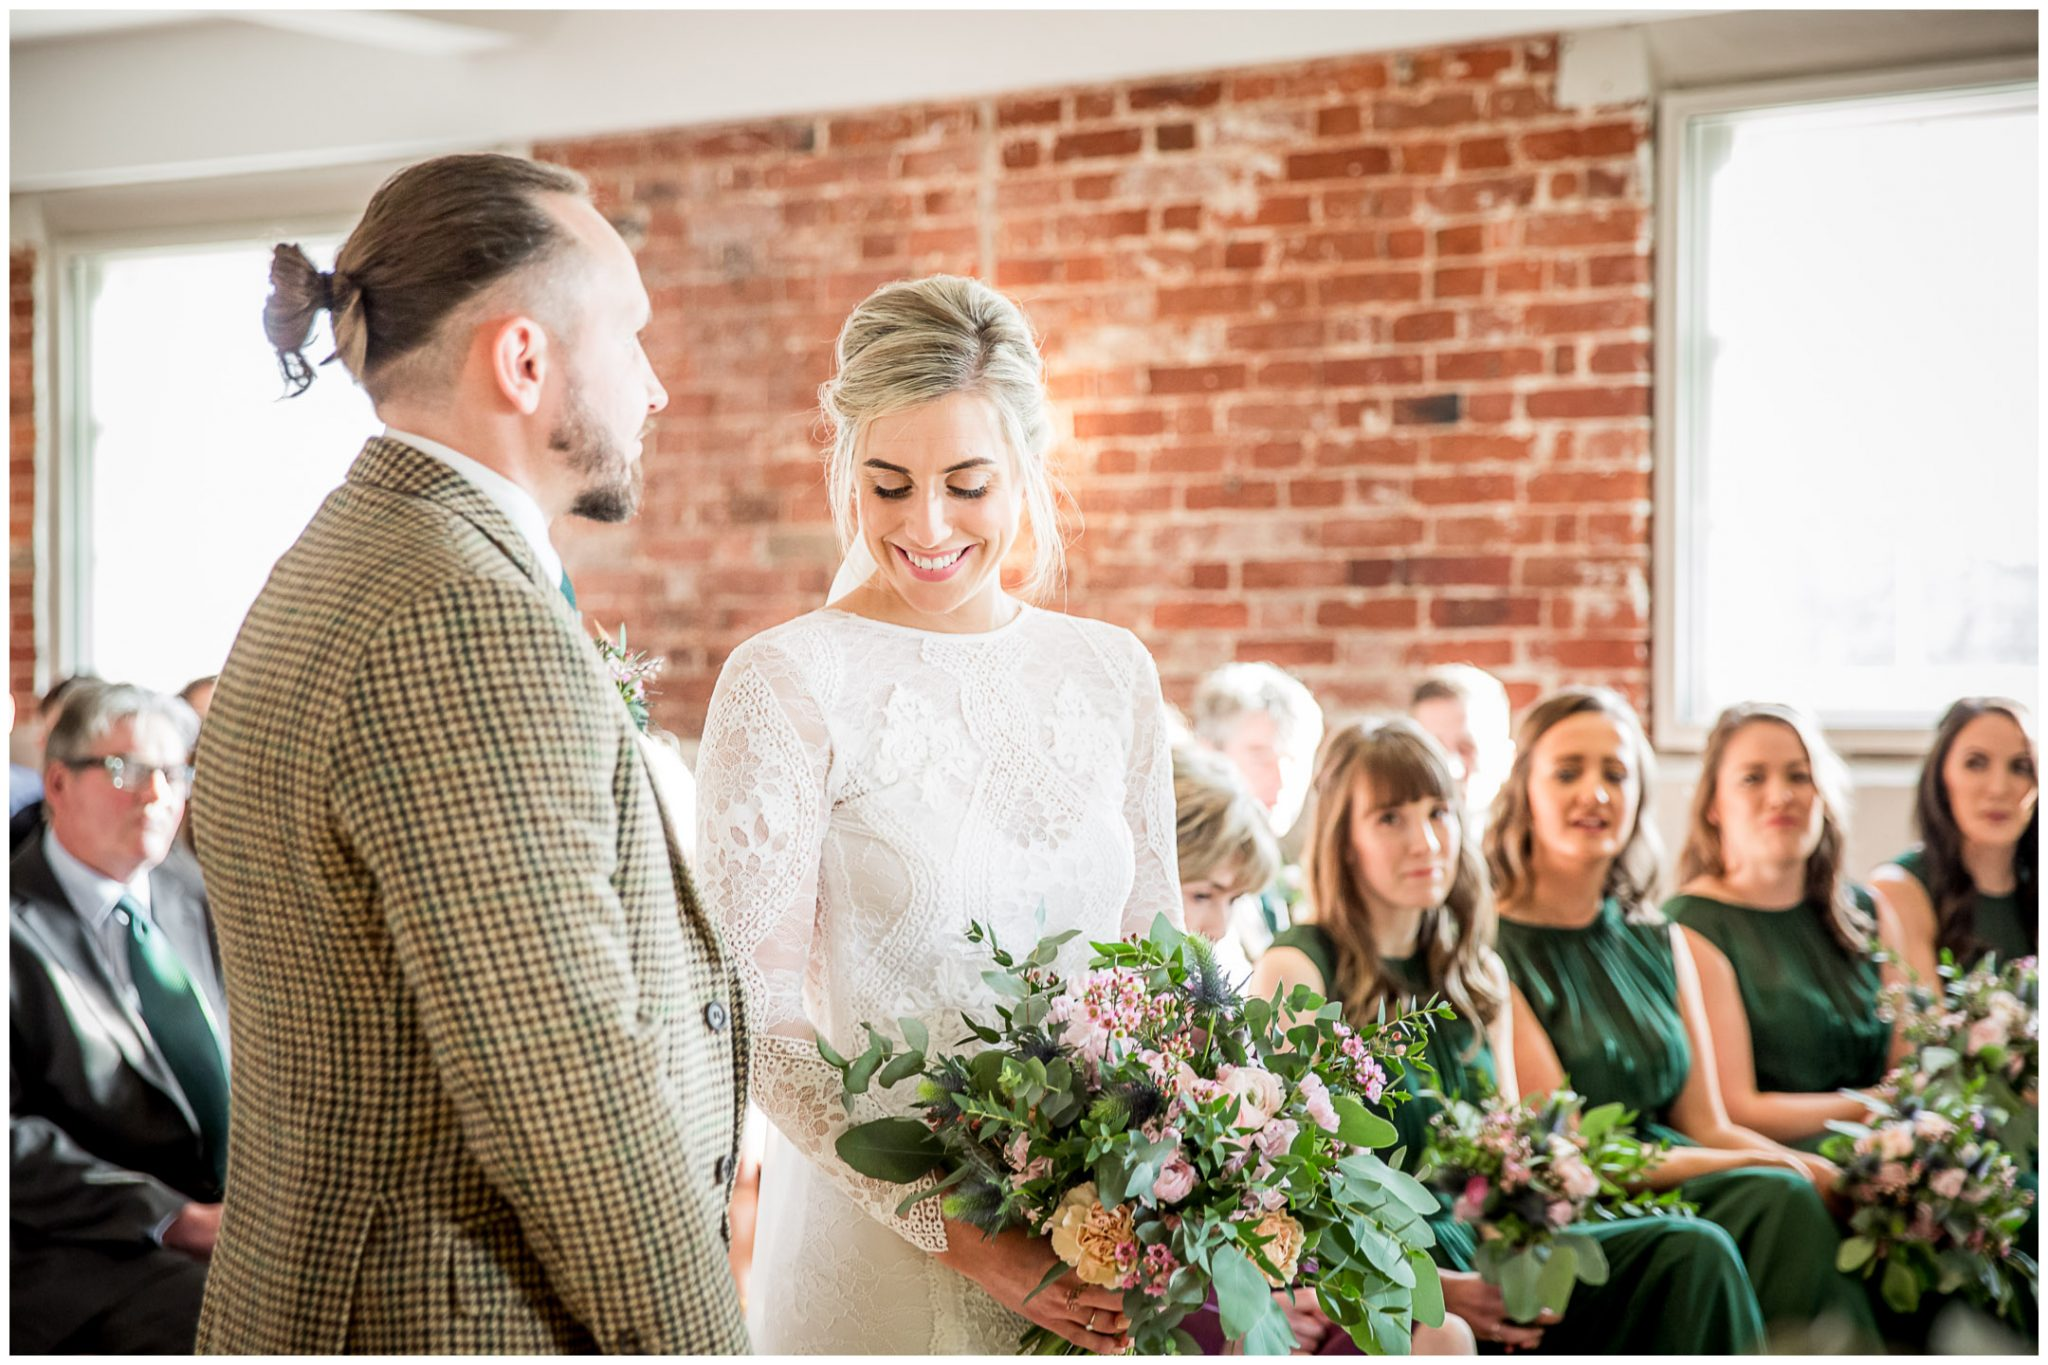 The bride and groom meet and see each other for the first time at the end of the aisle